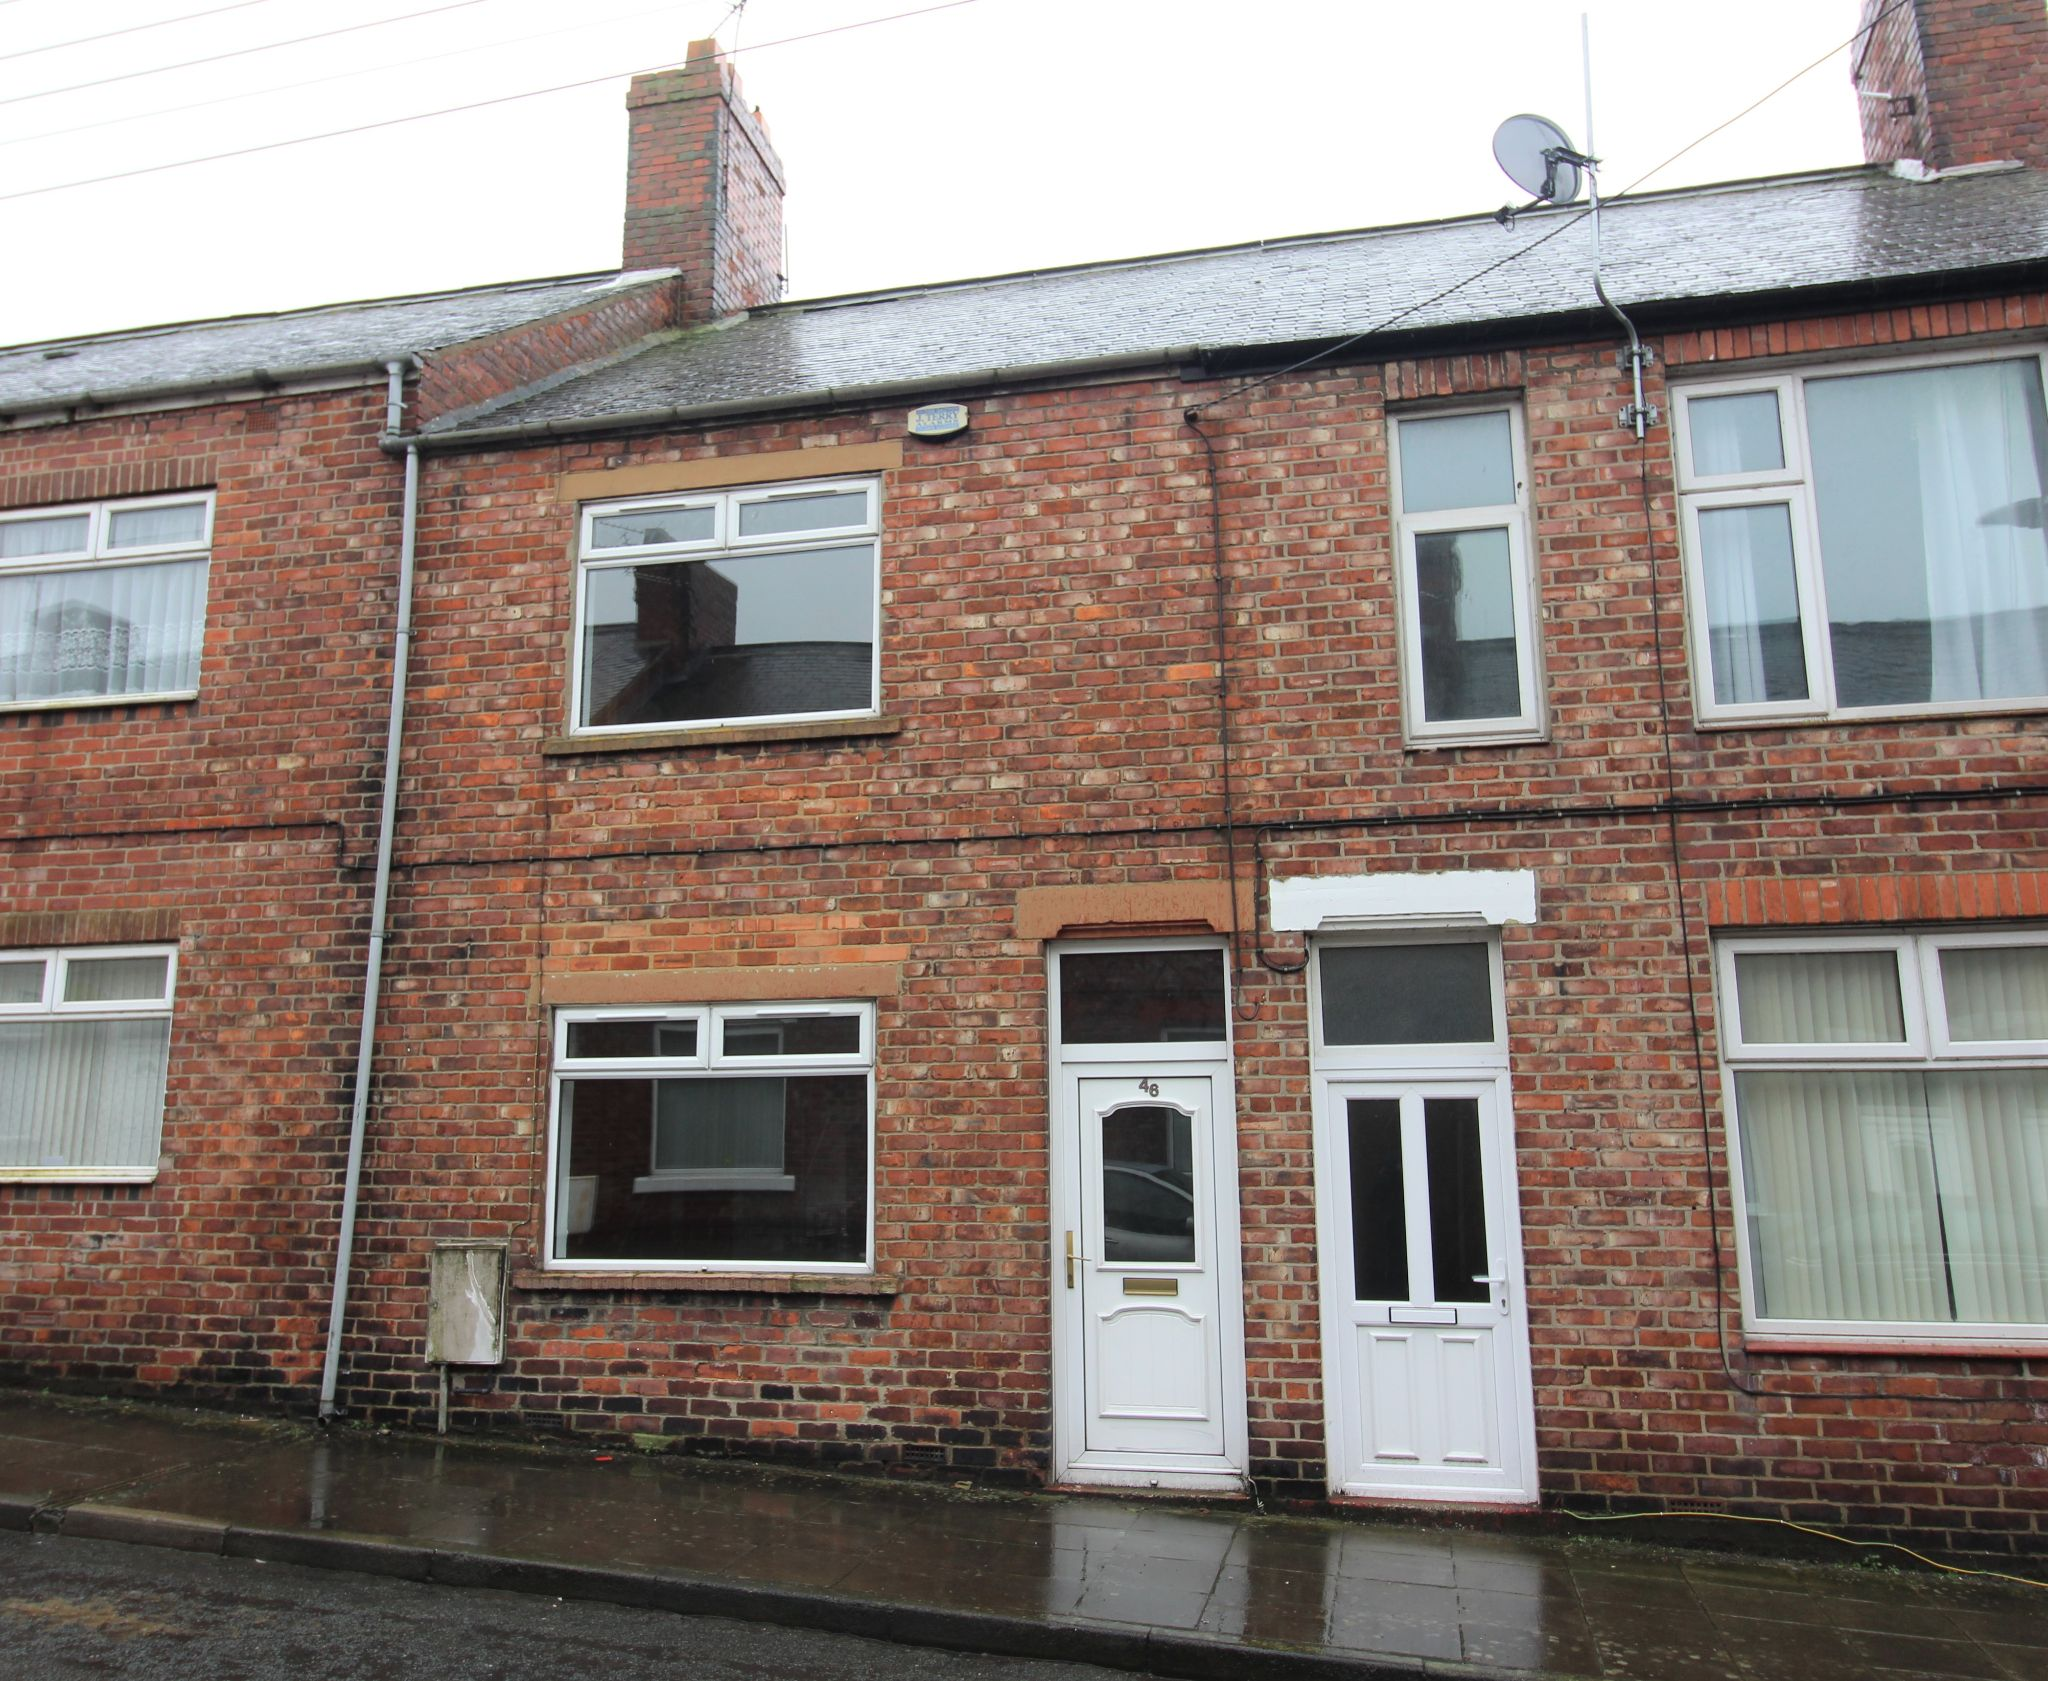 3 bedroom mid terraced house To Let in Ferryhill - 46 Arthur Street.